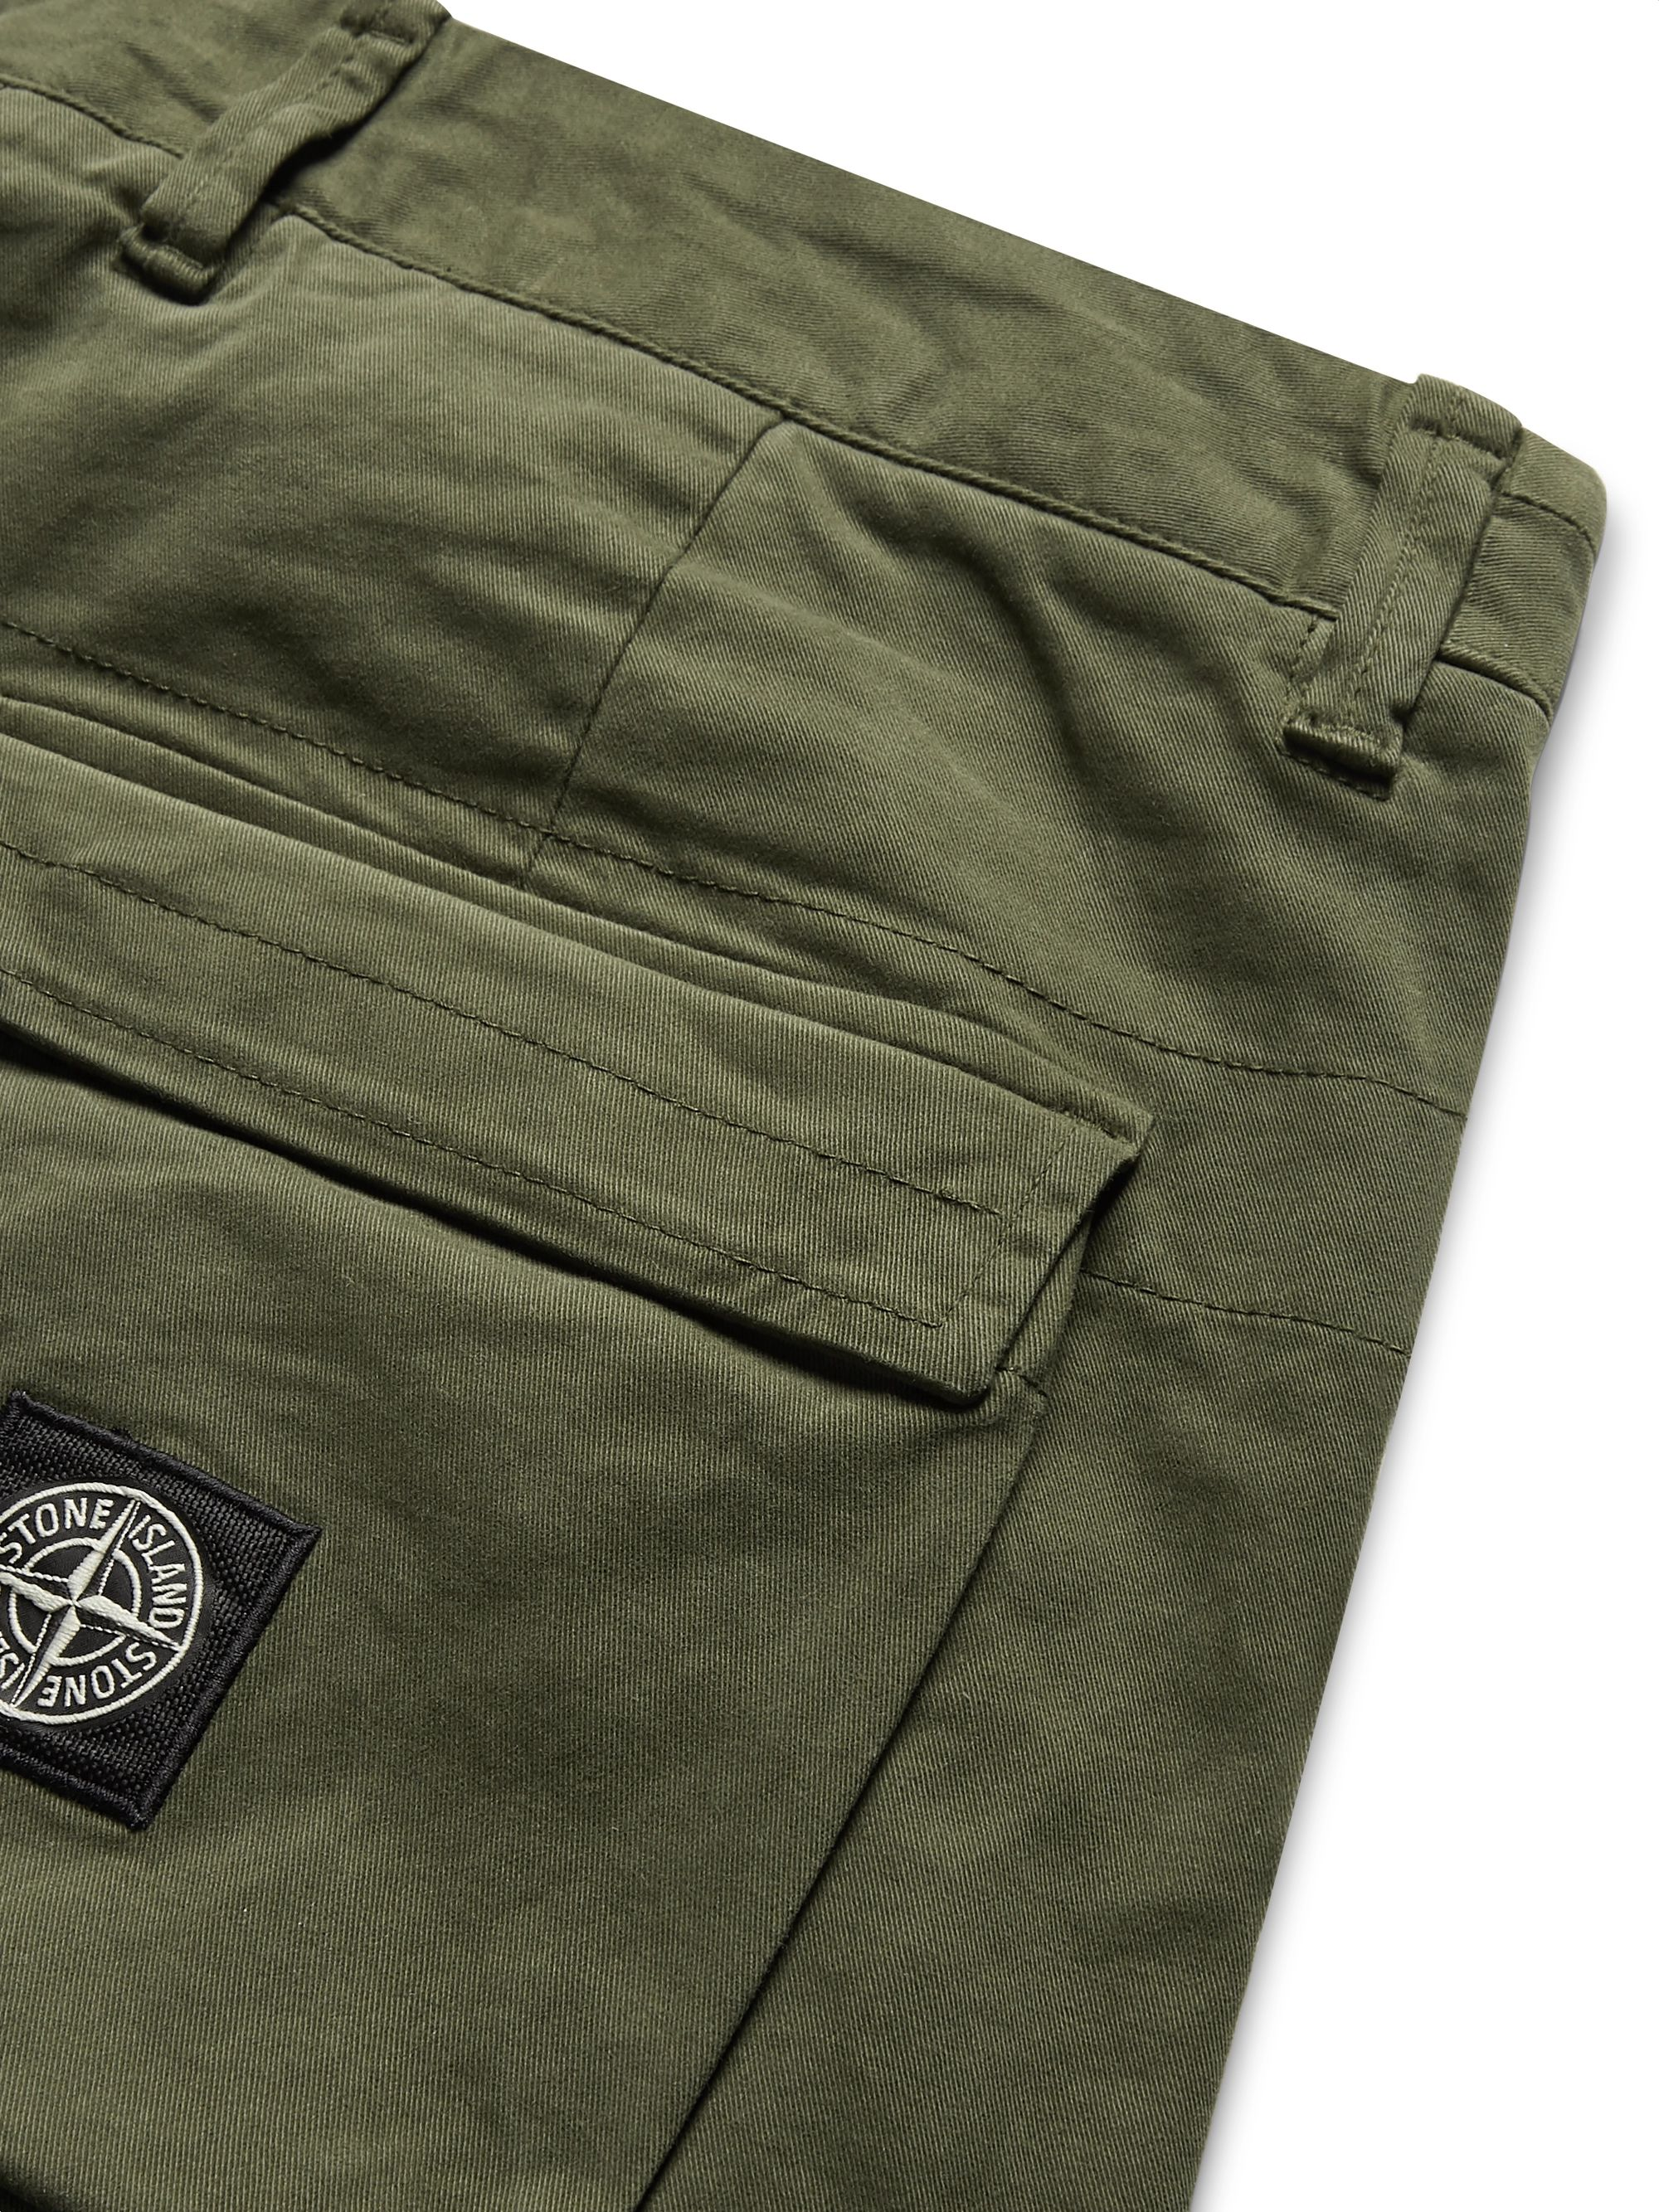 Stone Island Tapered Stretch-Cotton Twill Cargo Trousers